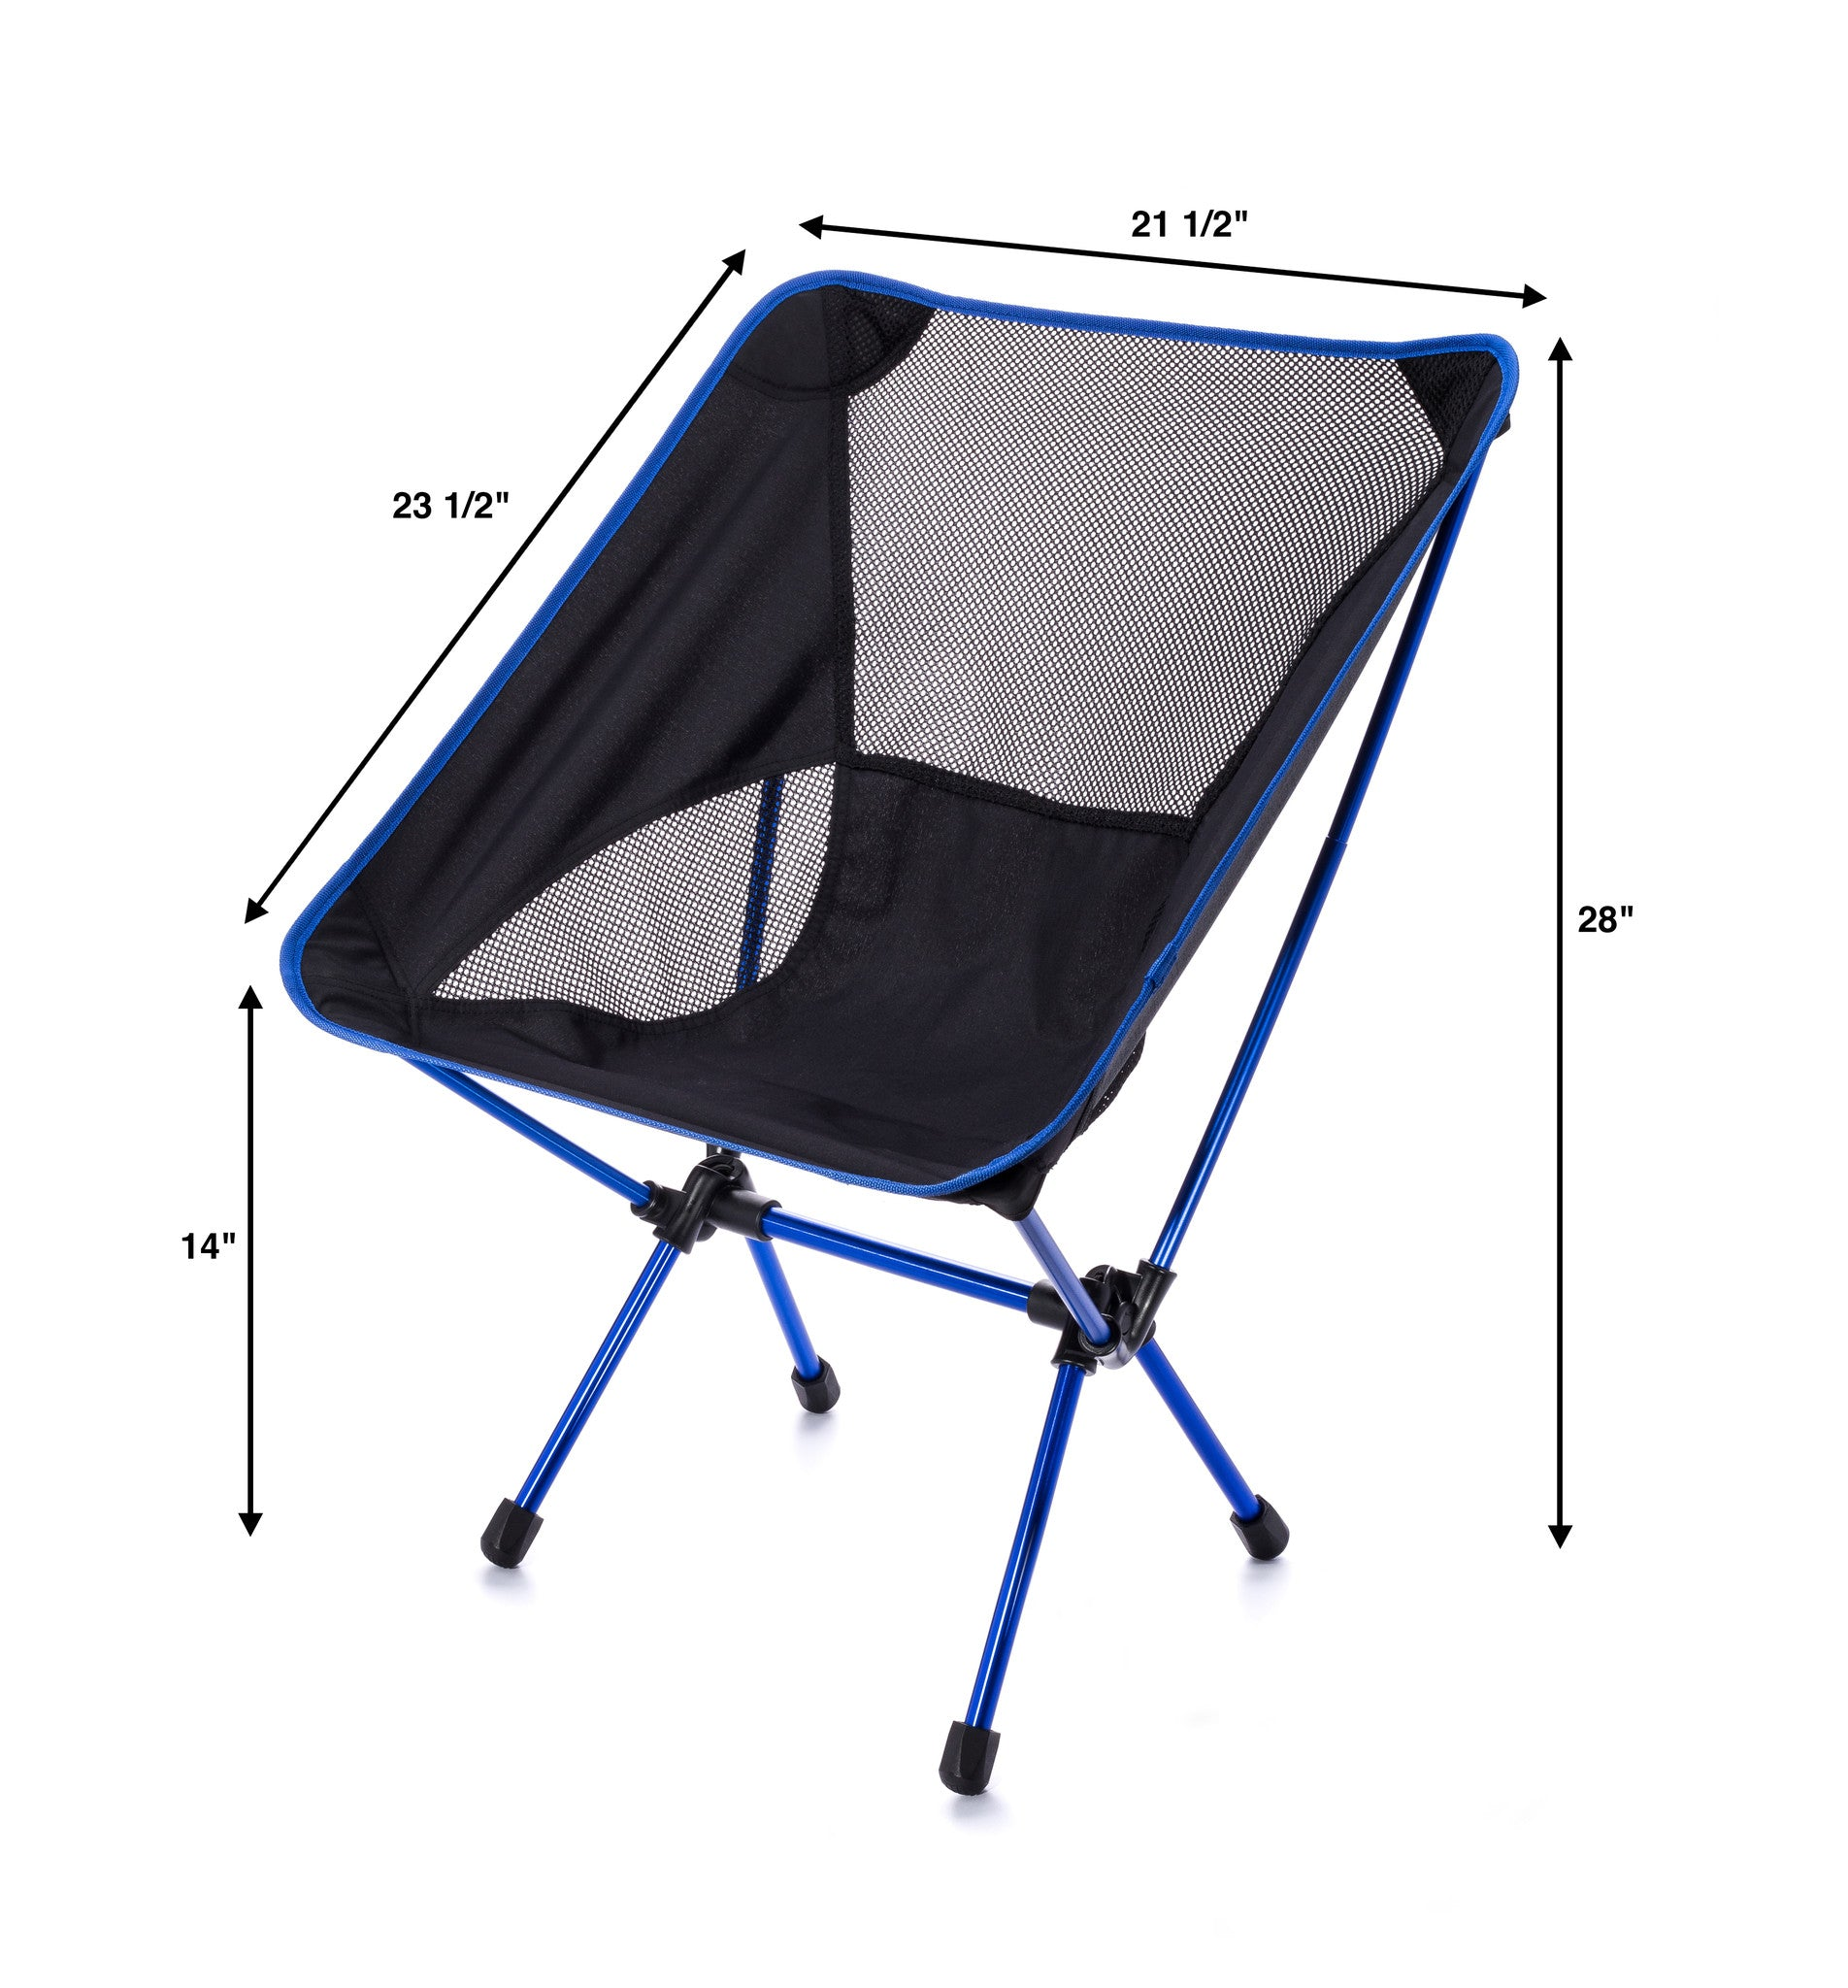 High Quality TrekUltra Portable Compact Lightweight Camp Chair With Bag   Ultralight  Folding Camp Chairs That Are Great For The Beach Hiking Backpacking And  Sporting ...